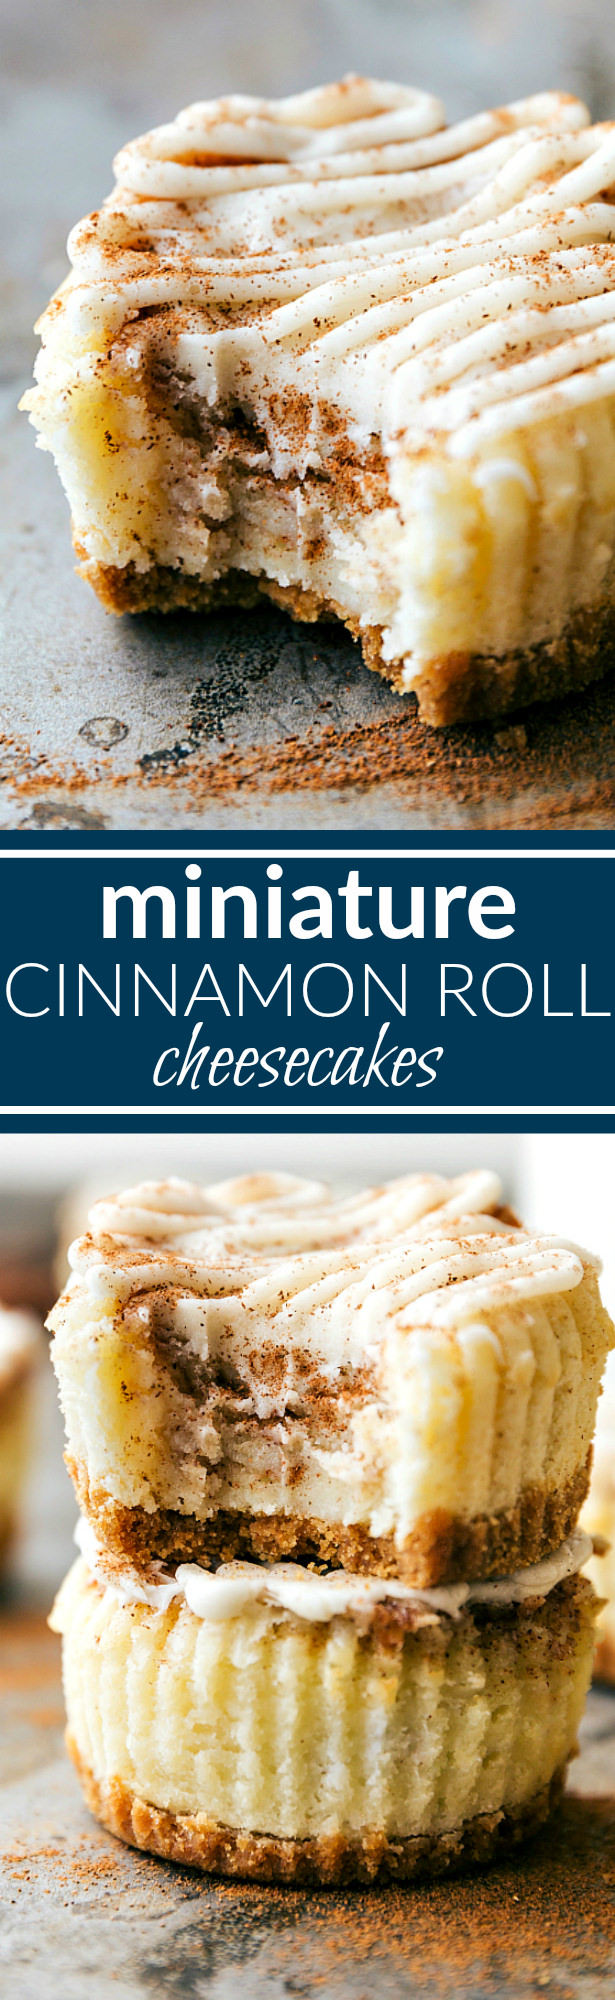 Miniature-sized cheesecakes with a cinnamon-sugar swirl and a cream cheese topping. These mini desserts taste just like a cinnamon roll!